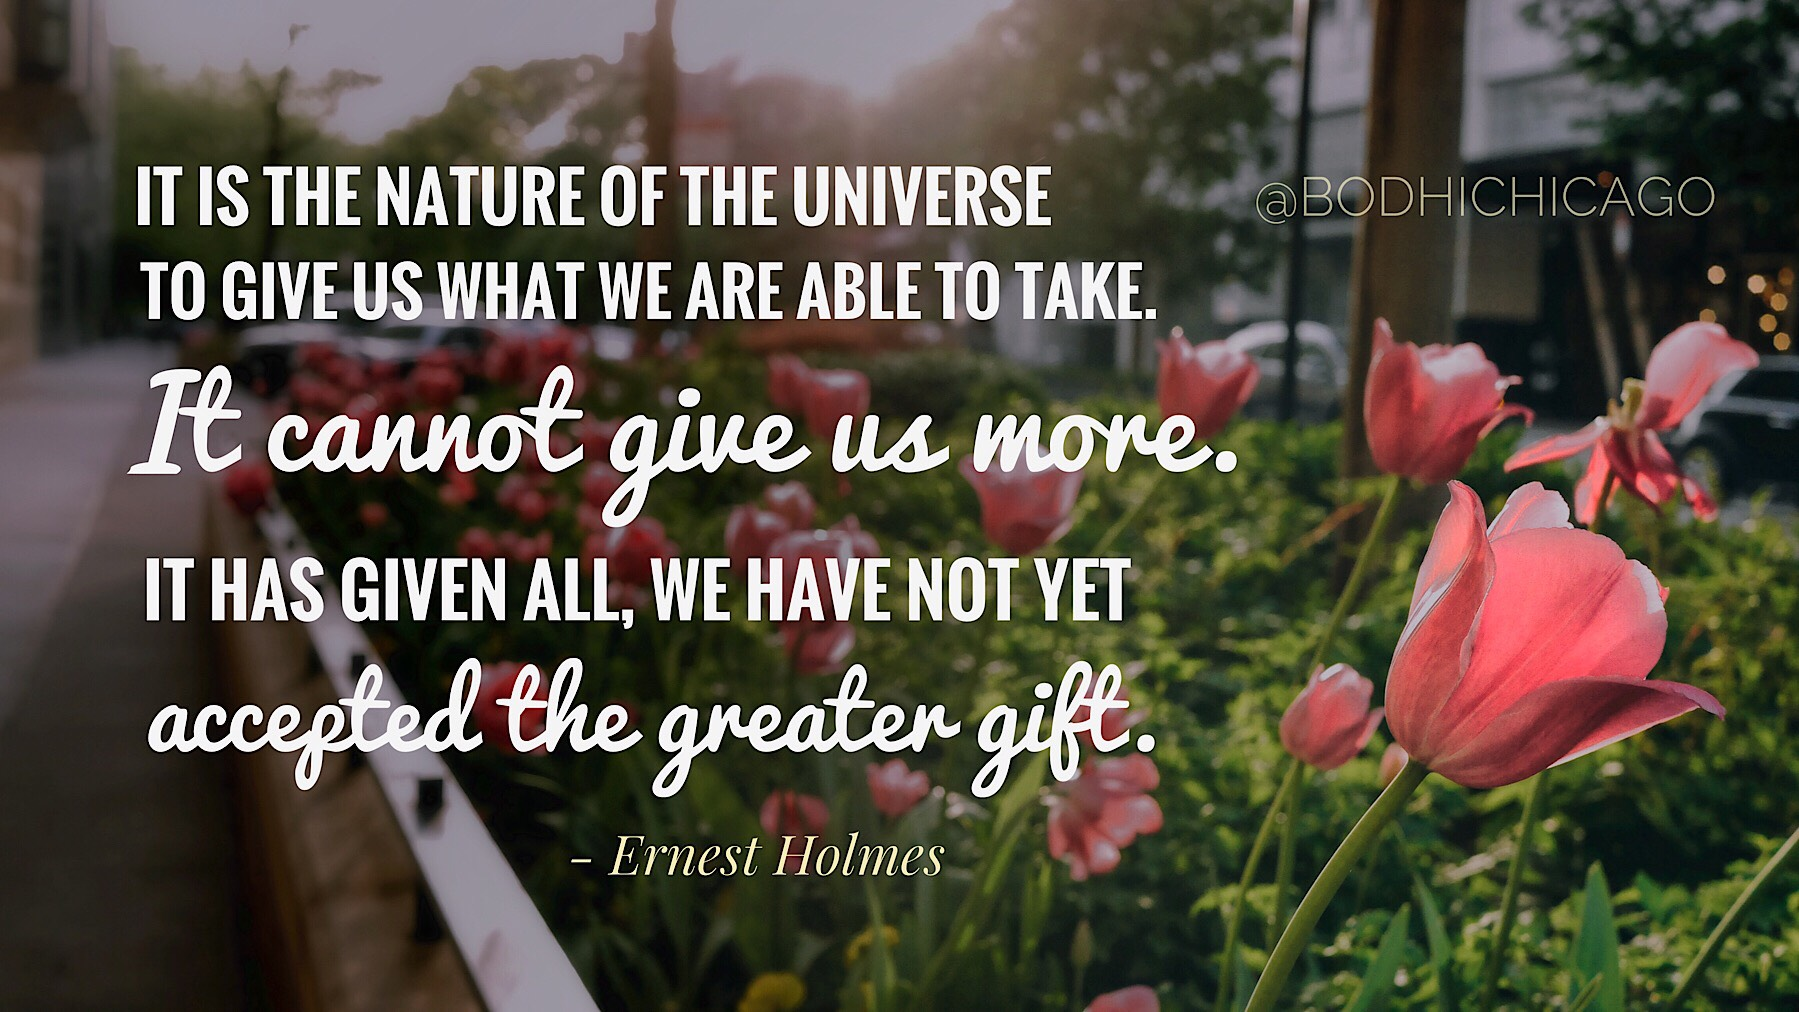 Wednesday Wisdom Quote: Ernest Holmes On The Nature Of The Universe